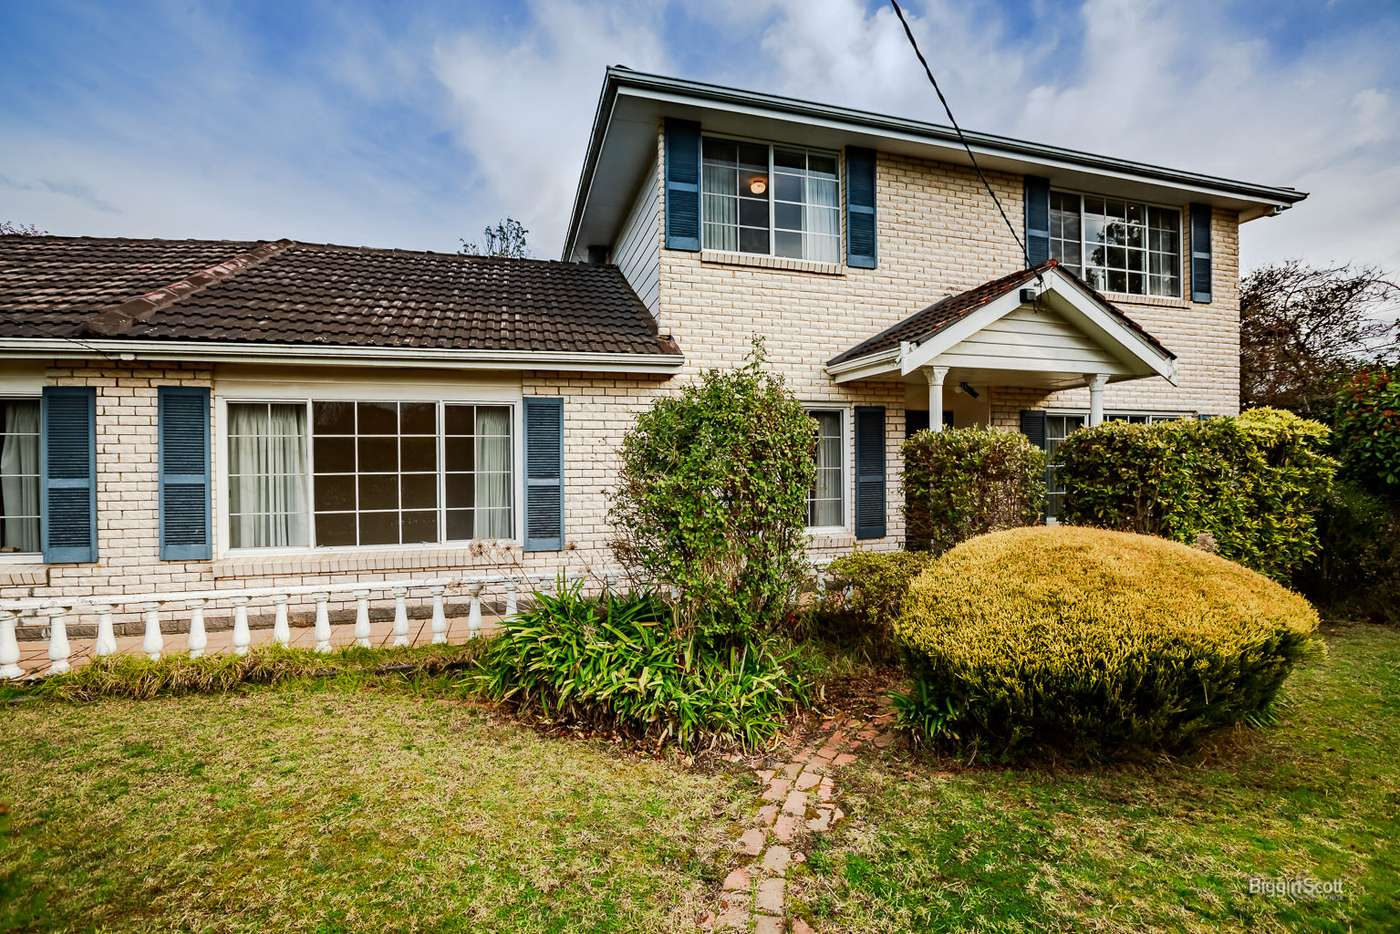 Main view of Homely house listing, 91 Orange Grove, Bayswater VIC 3153